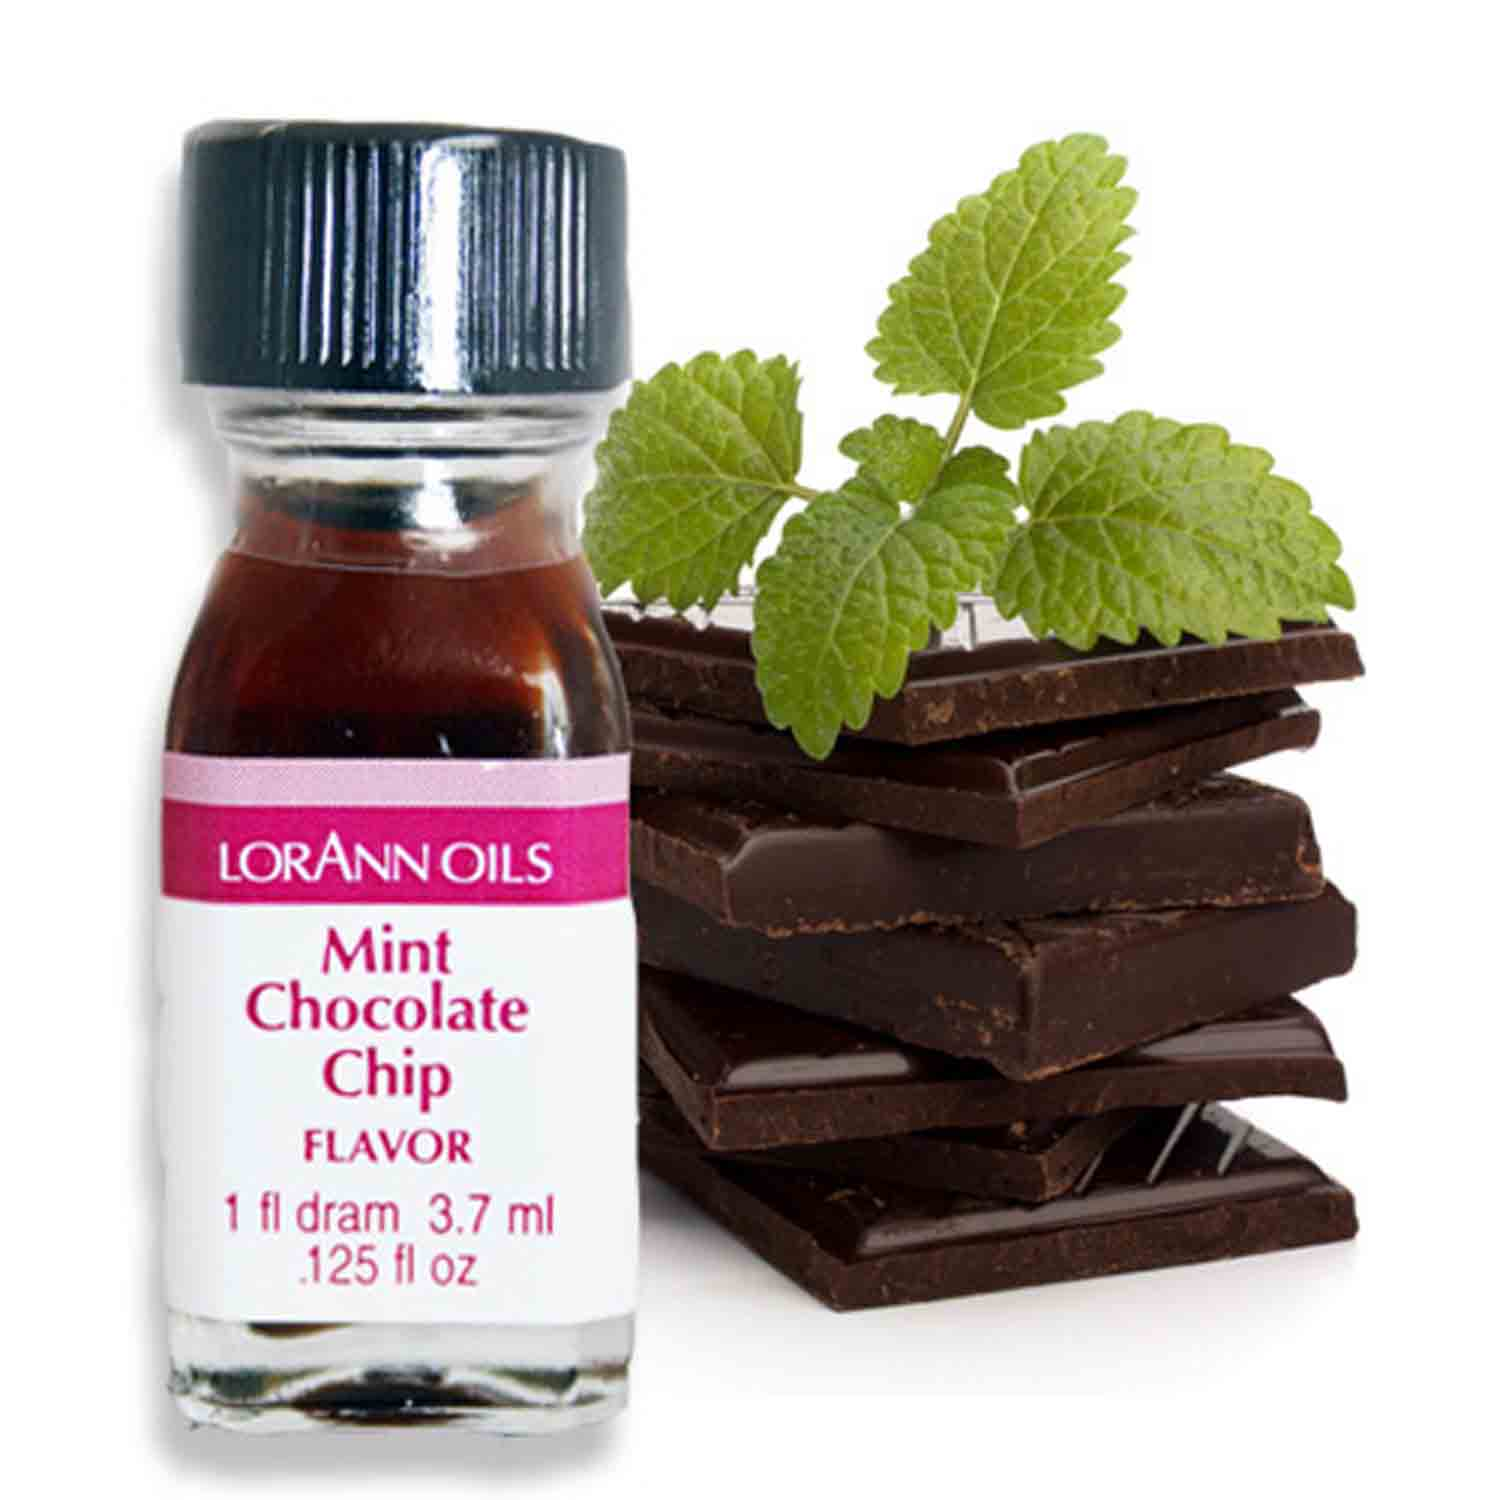 Mint Chocolate Chip LorAnn Super-Strength Flavor